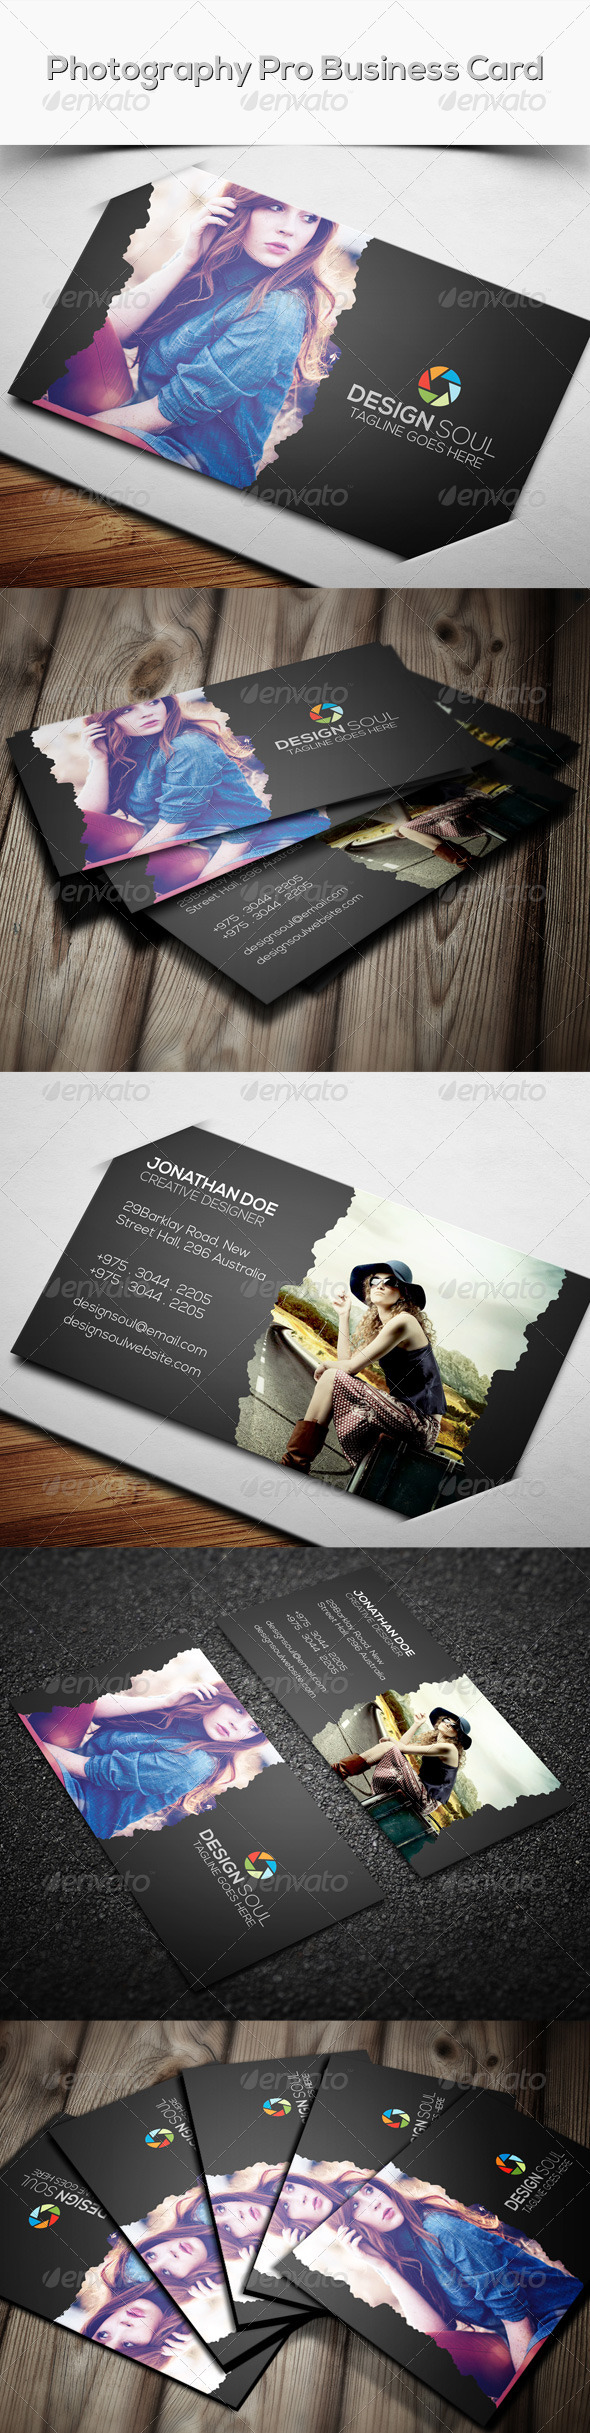 GraphicRiver Photography Pro Business Card 8258363